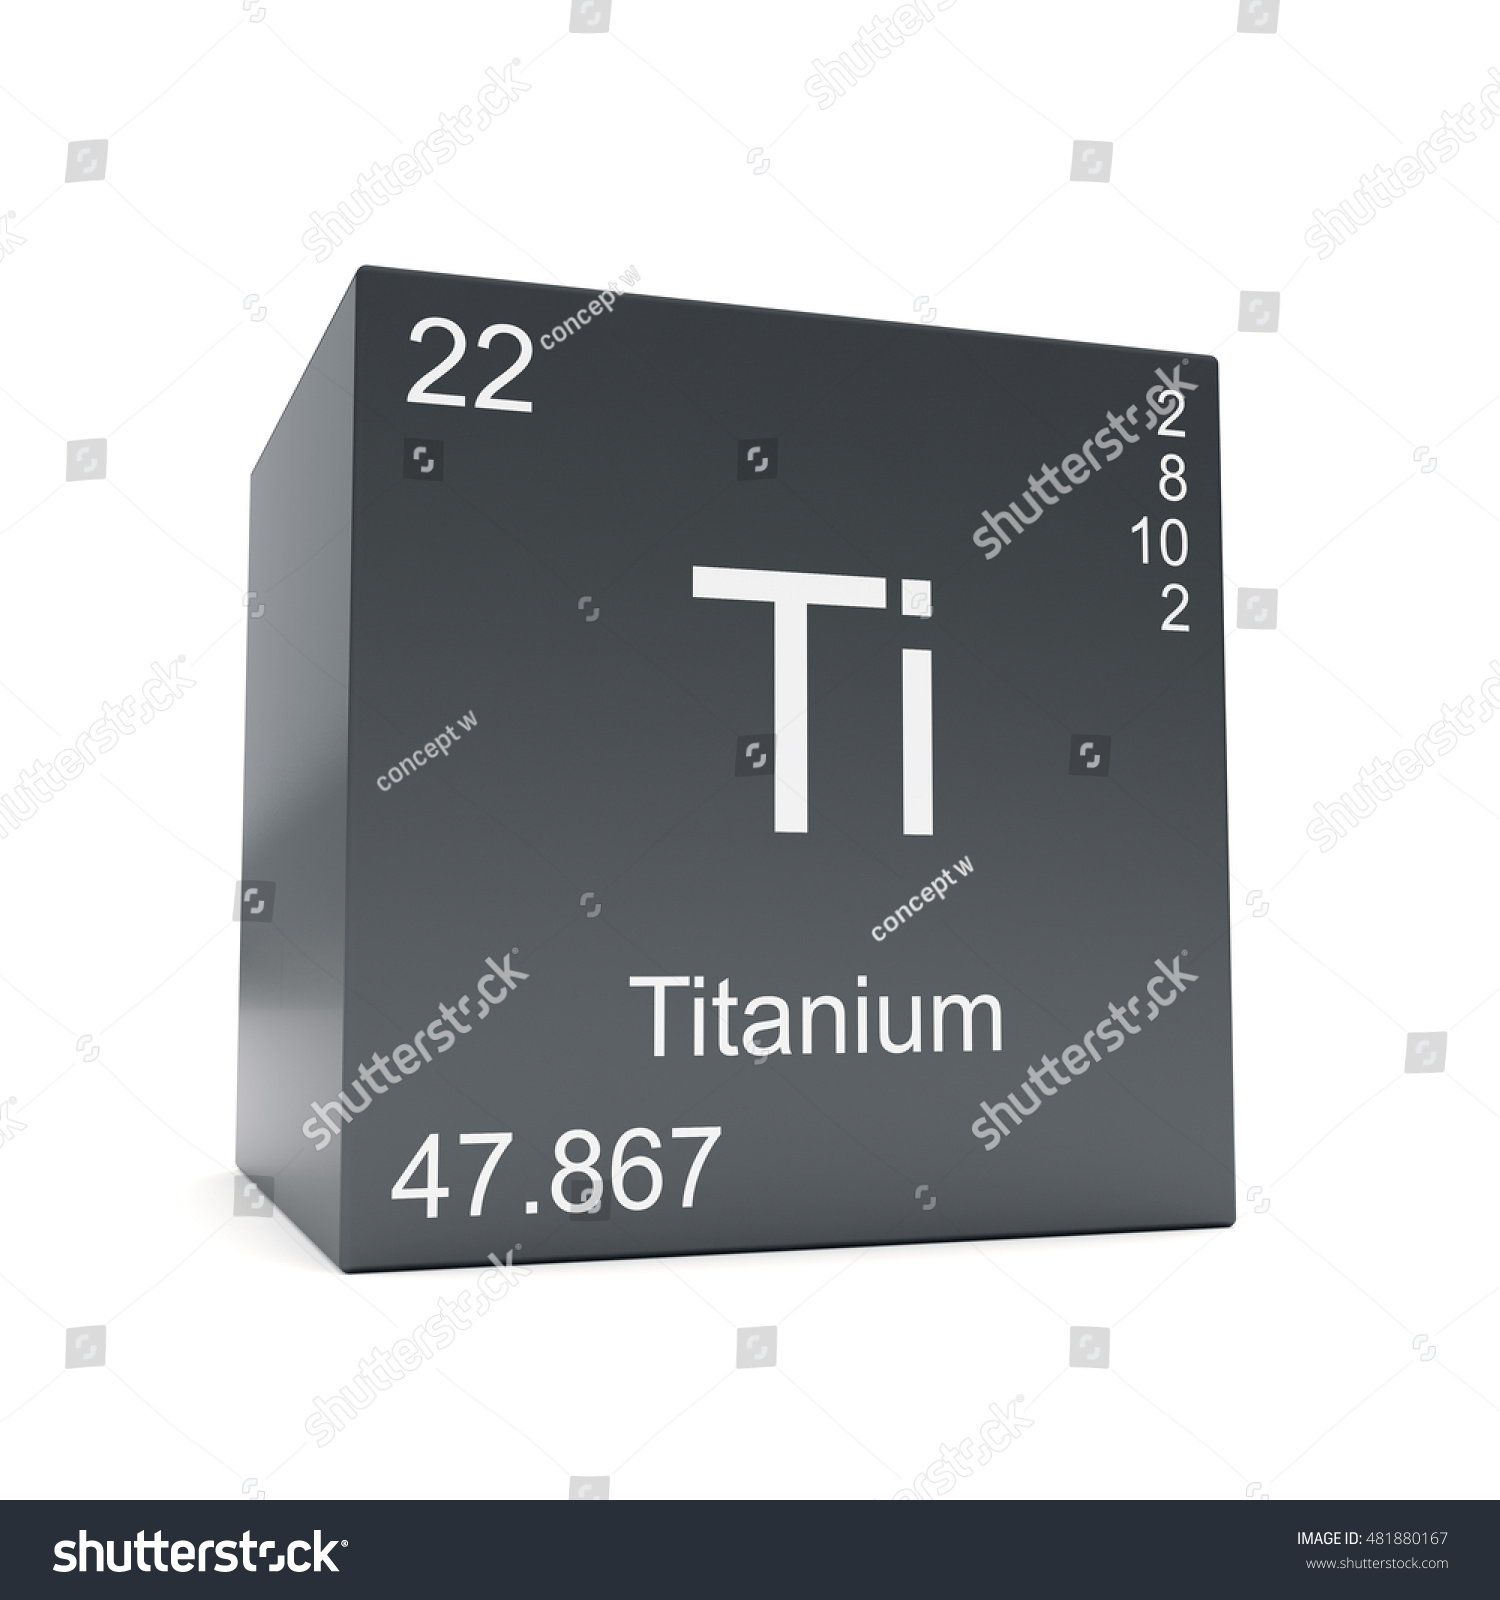 Titanium chemical element symbol periodic table stock illustration titanium chemical element symbol from the periodic table displayed on black cube 3d render urtaz Image collections